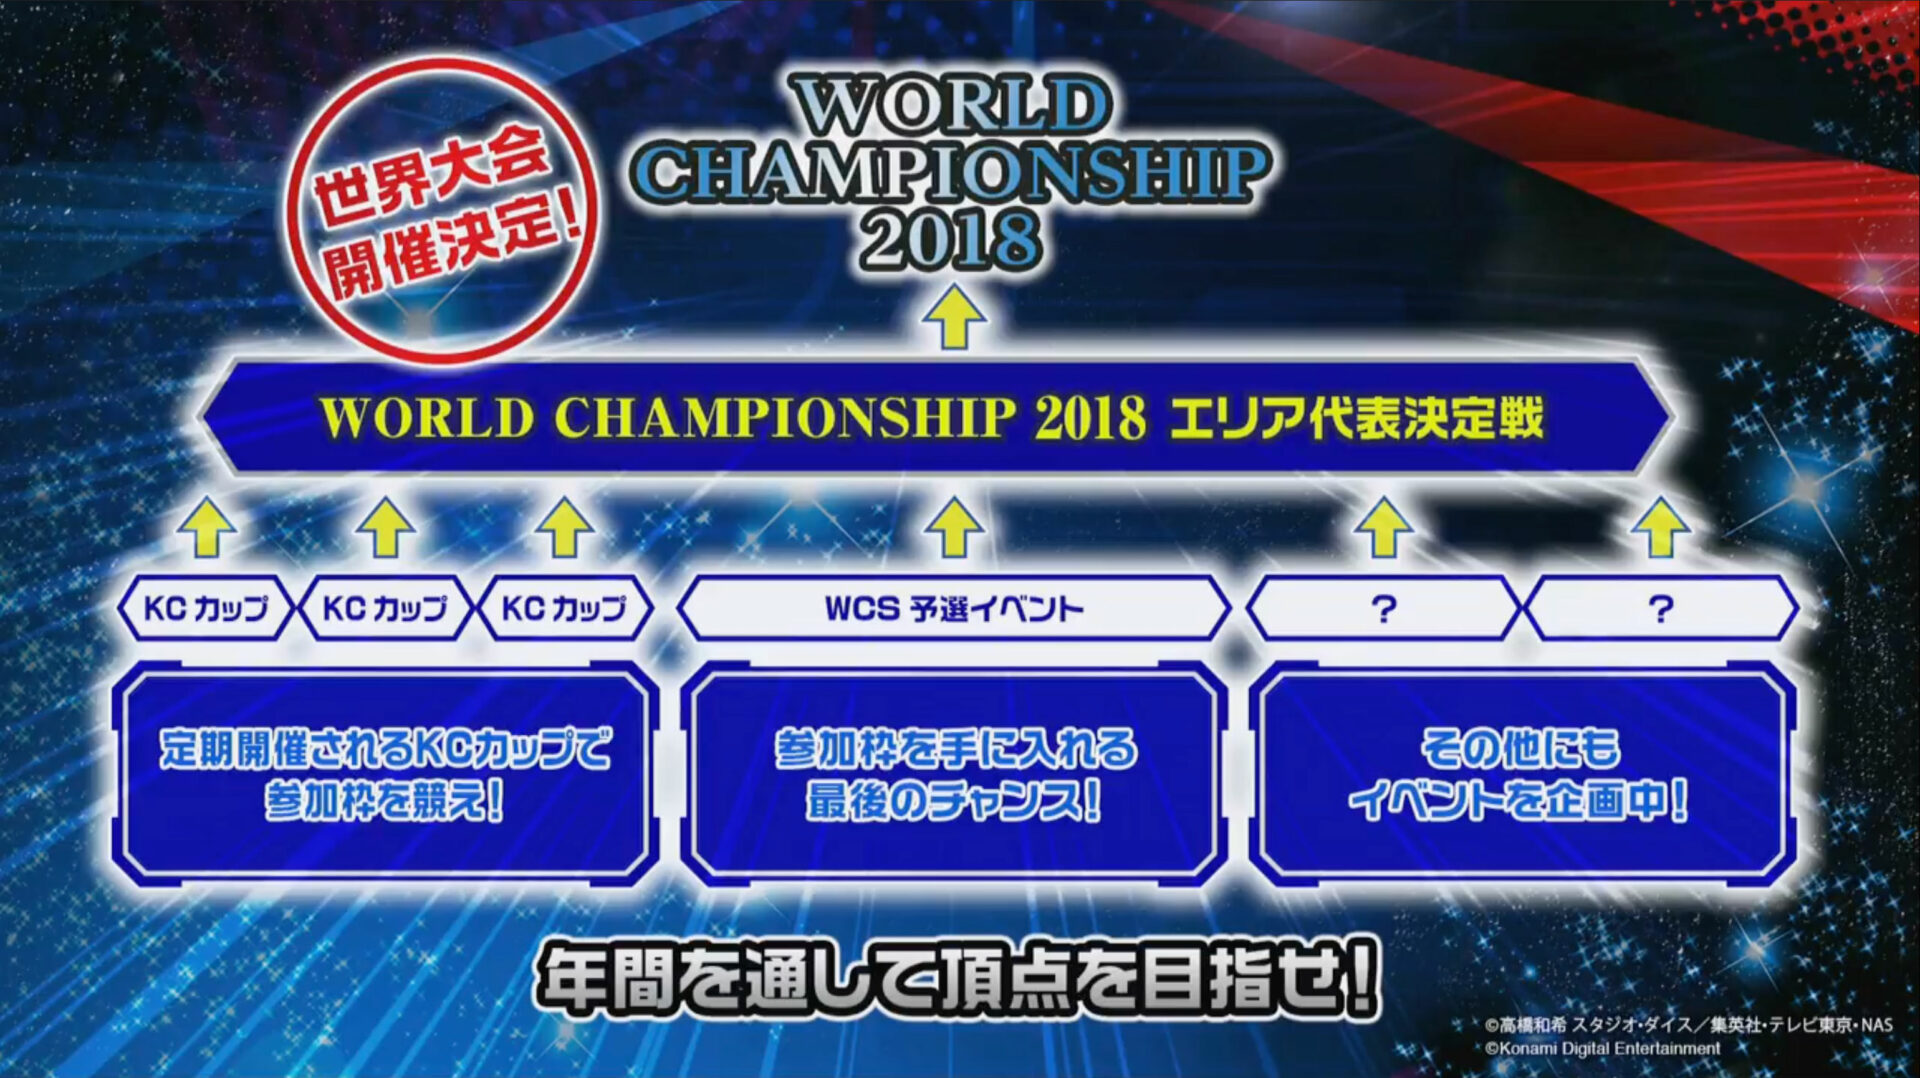 [Duel Links] World Championship 2018 Updates - Beyond the Duel